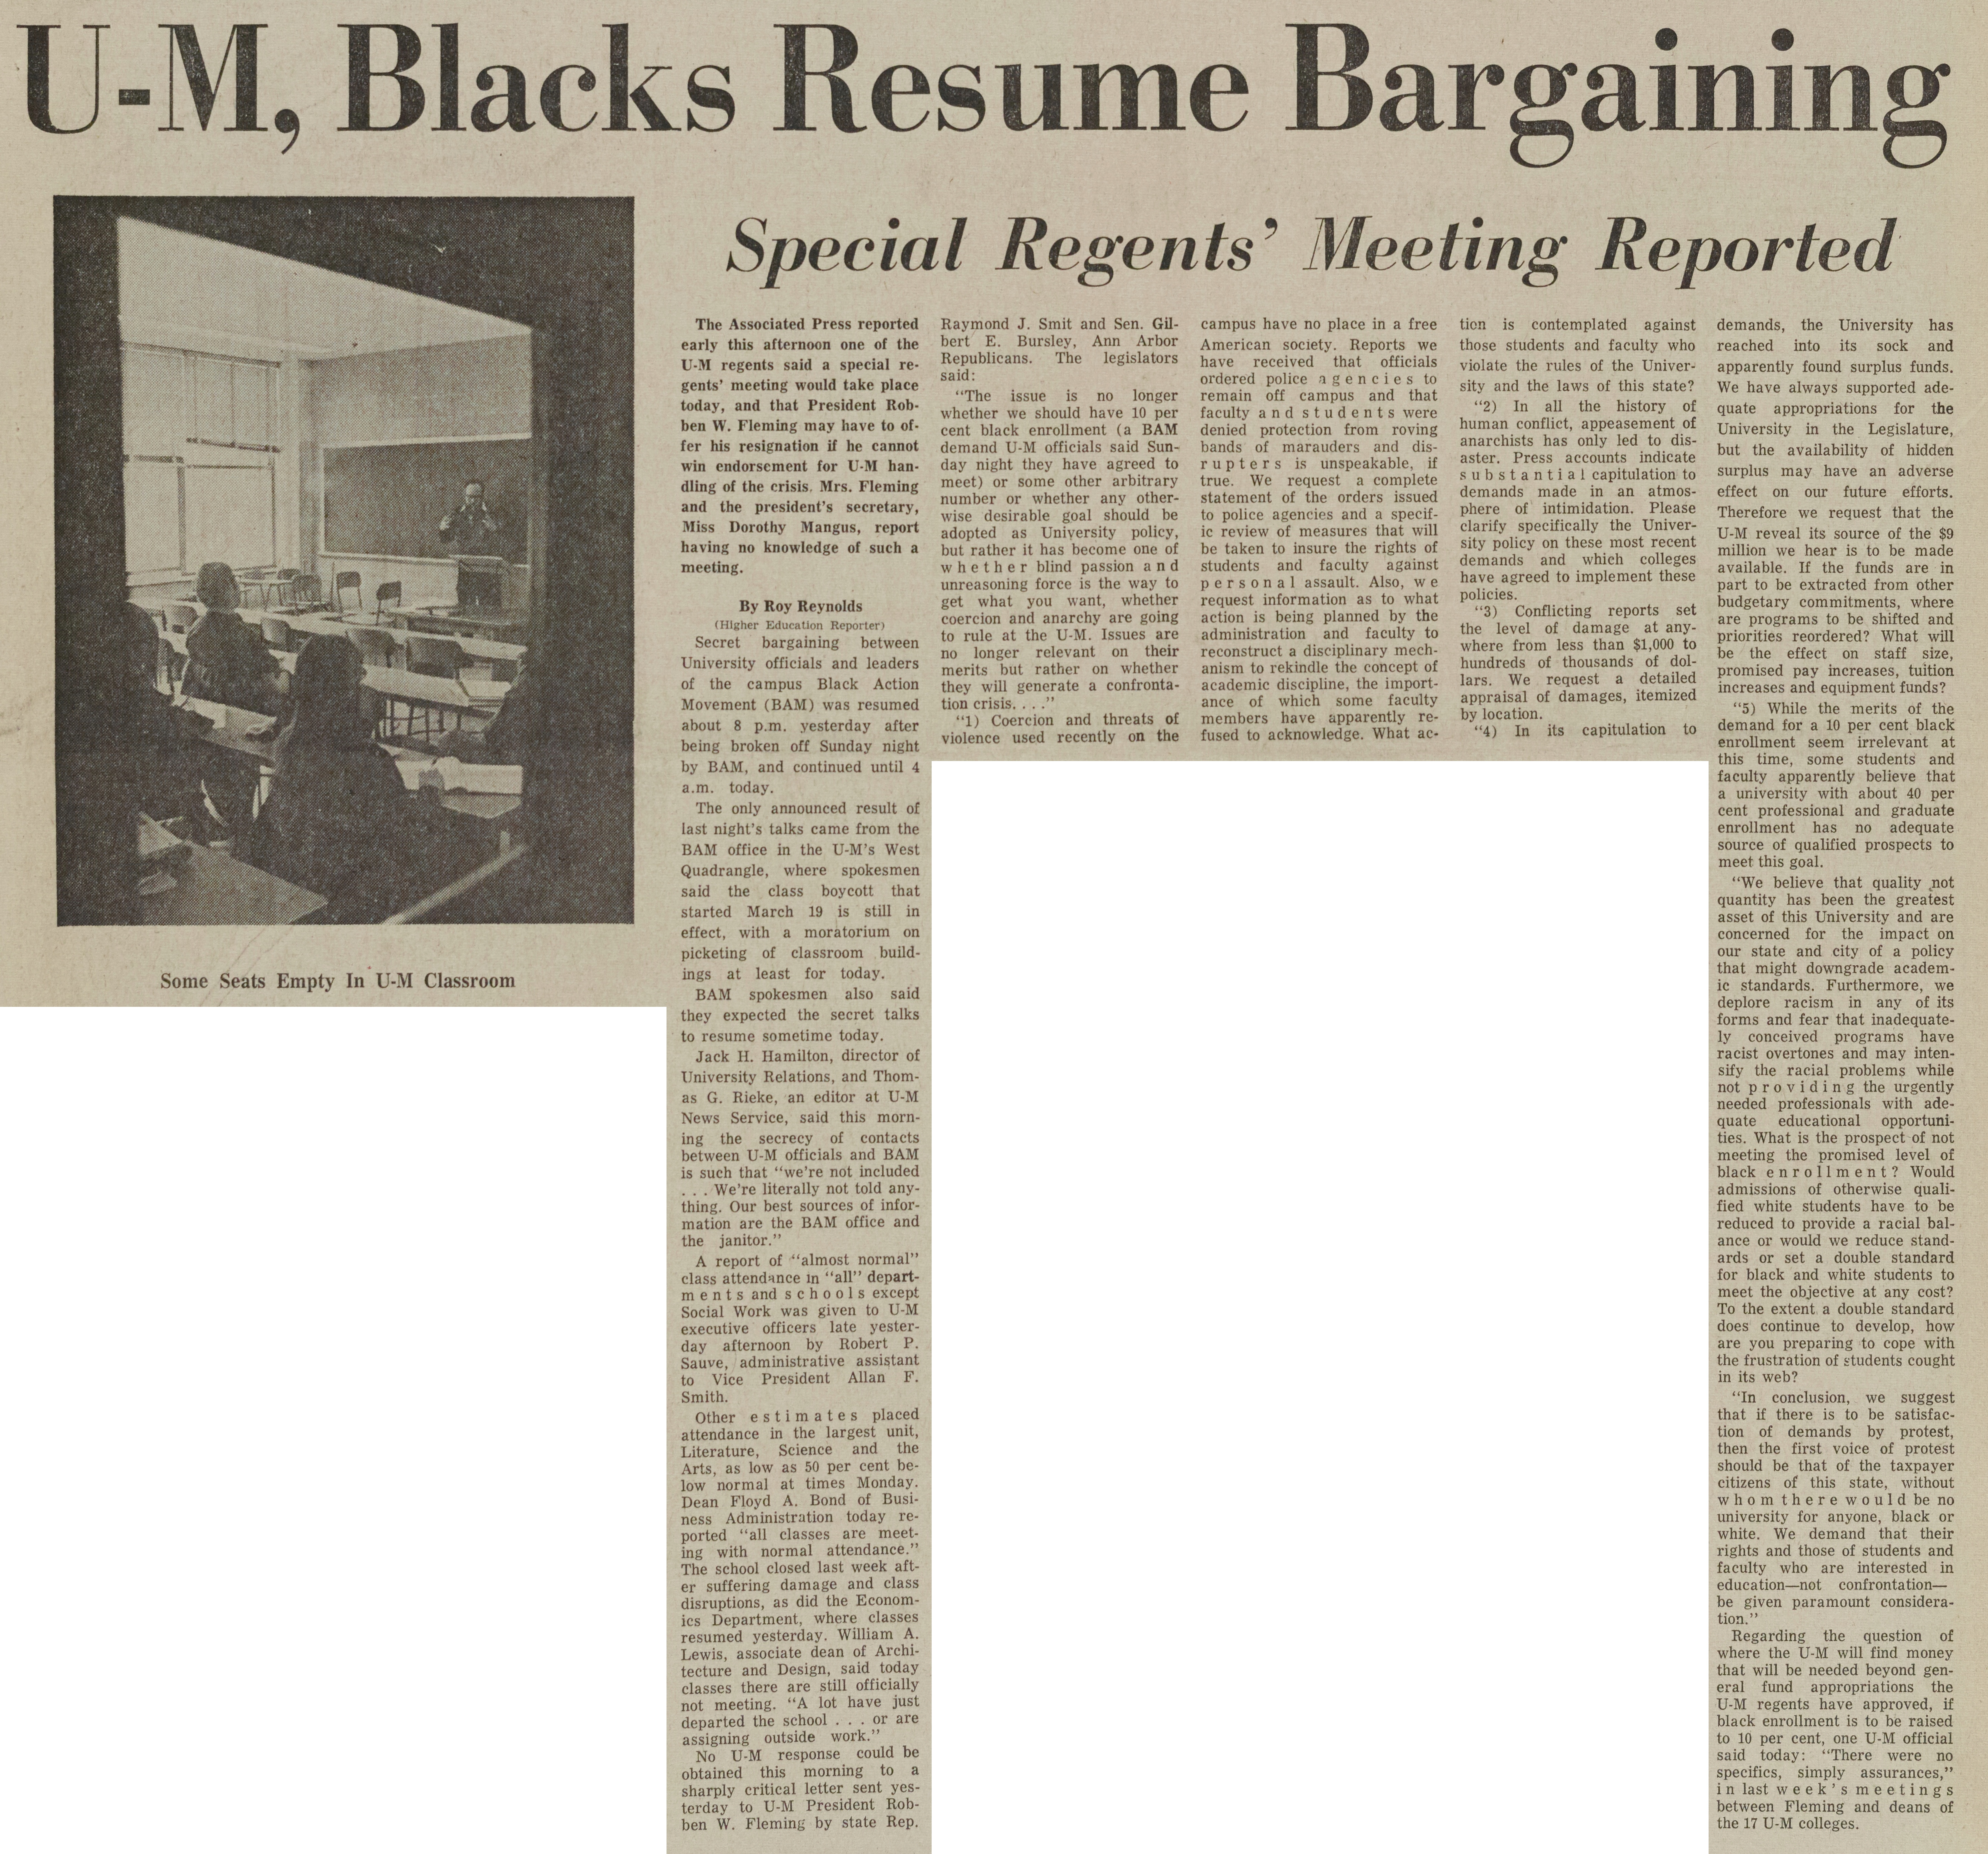 U-M, Blacks Resume Bargaining image